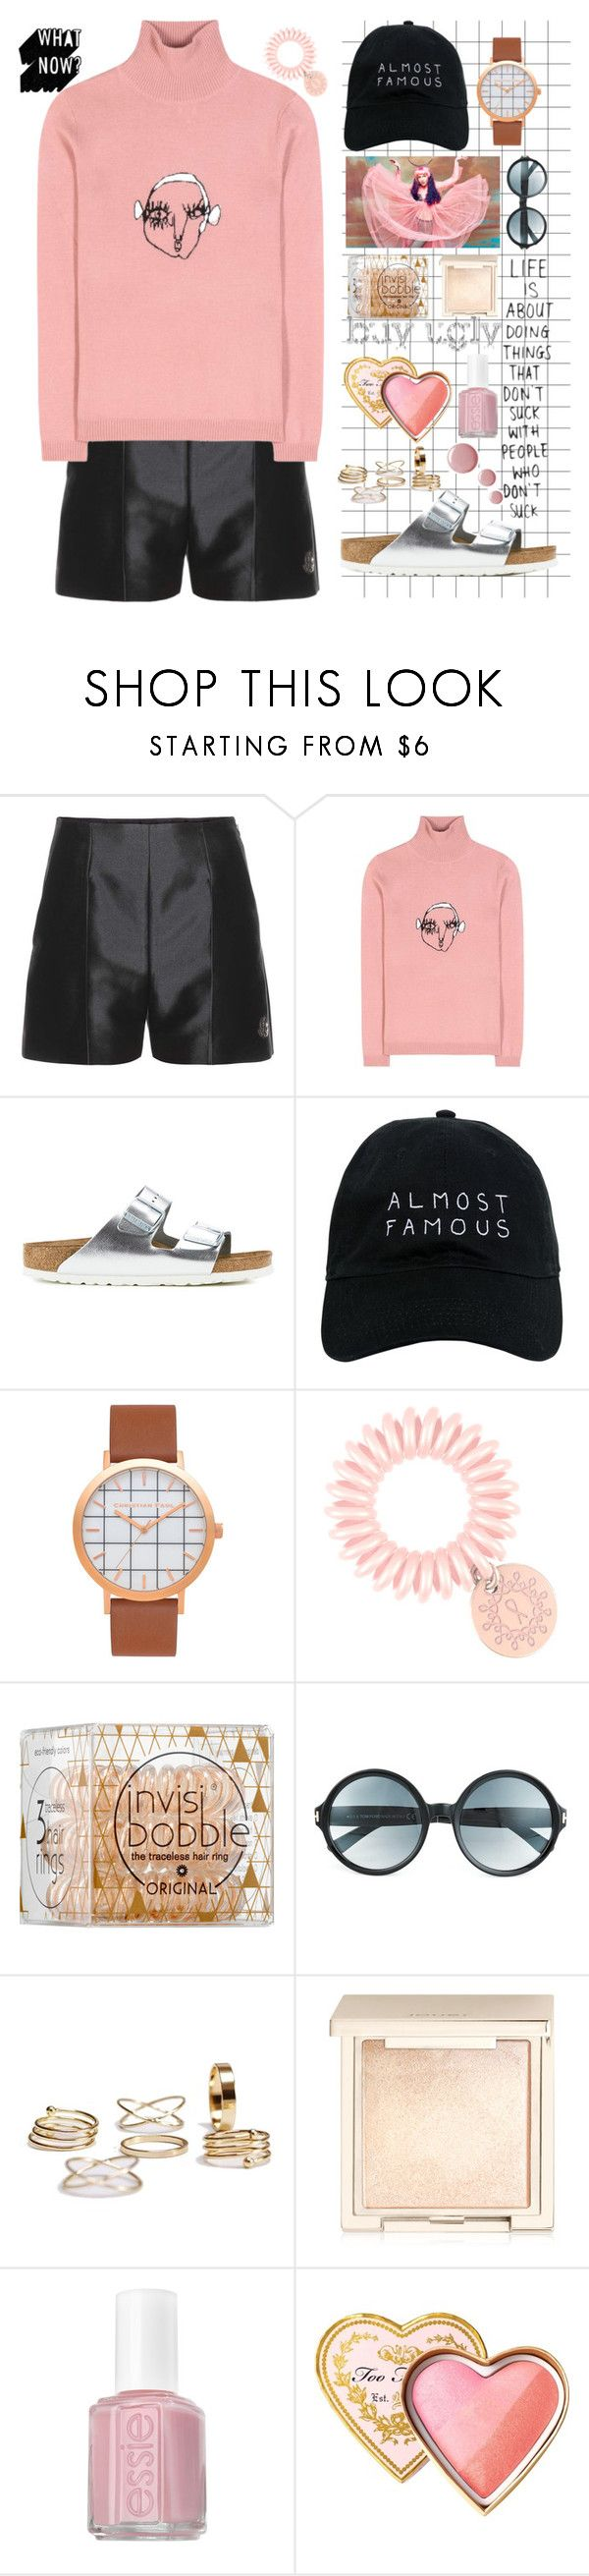 """""""Buy ugly shoes"""" by bartivana ❤ liked on Polyvore featuring Moncler Gamme Rouge, Shrimps, Birkenstock, Nasaseasons, STELLA McCARTNEY, Invisibobble, Tom Ford, Jouer, Essie and Too Faced Cosmetics"""